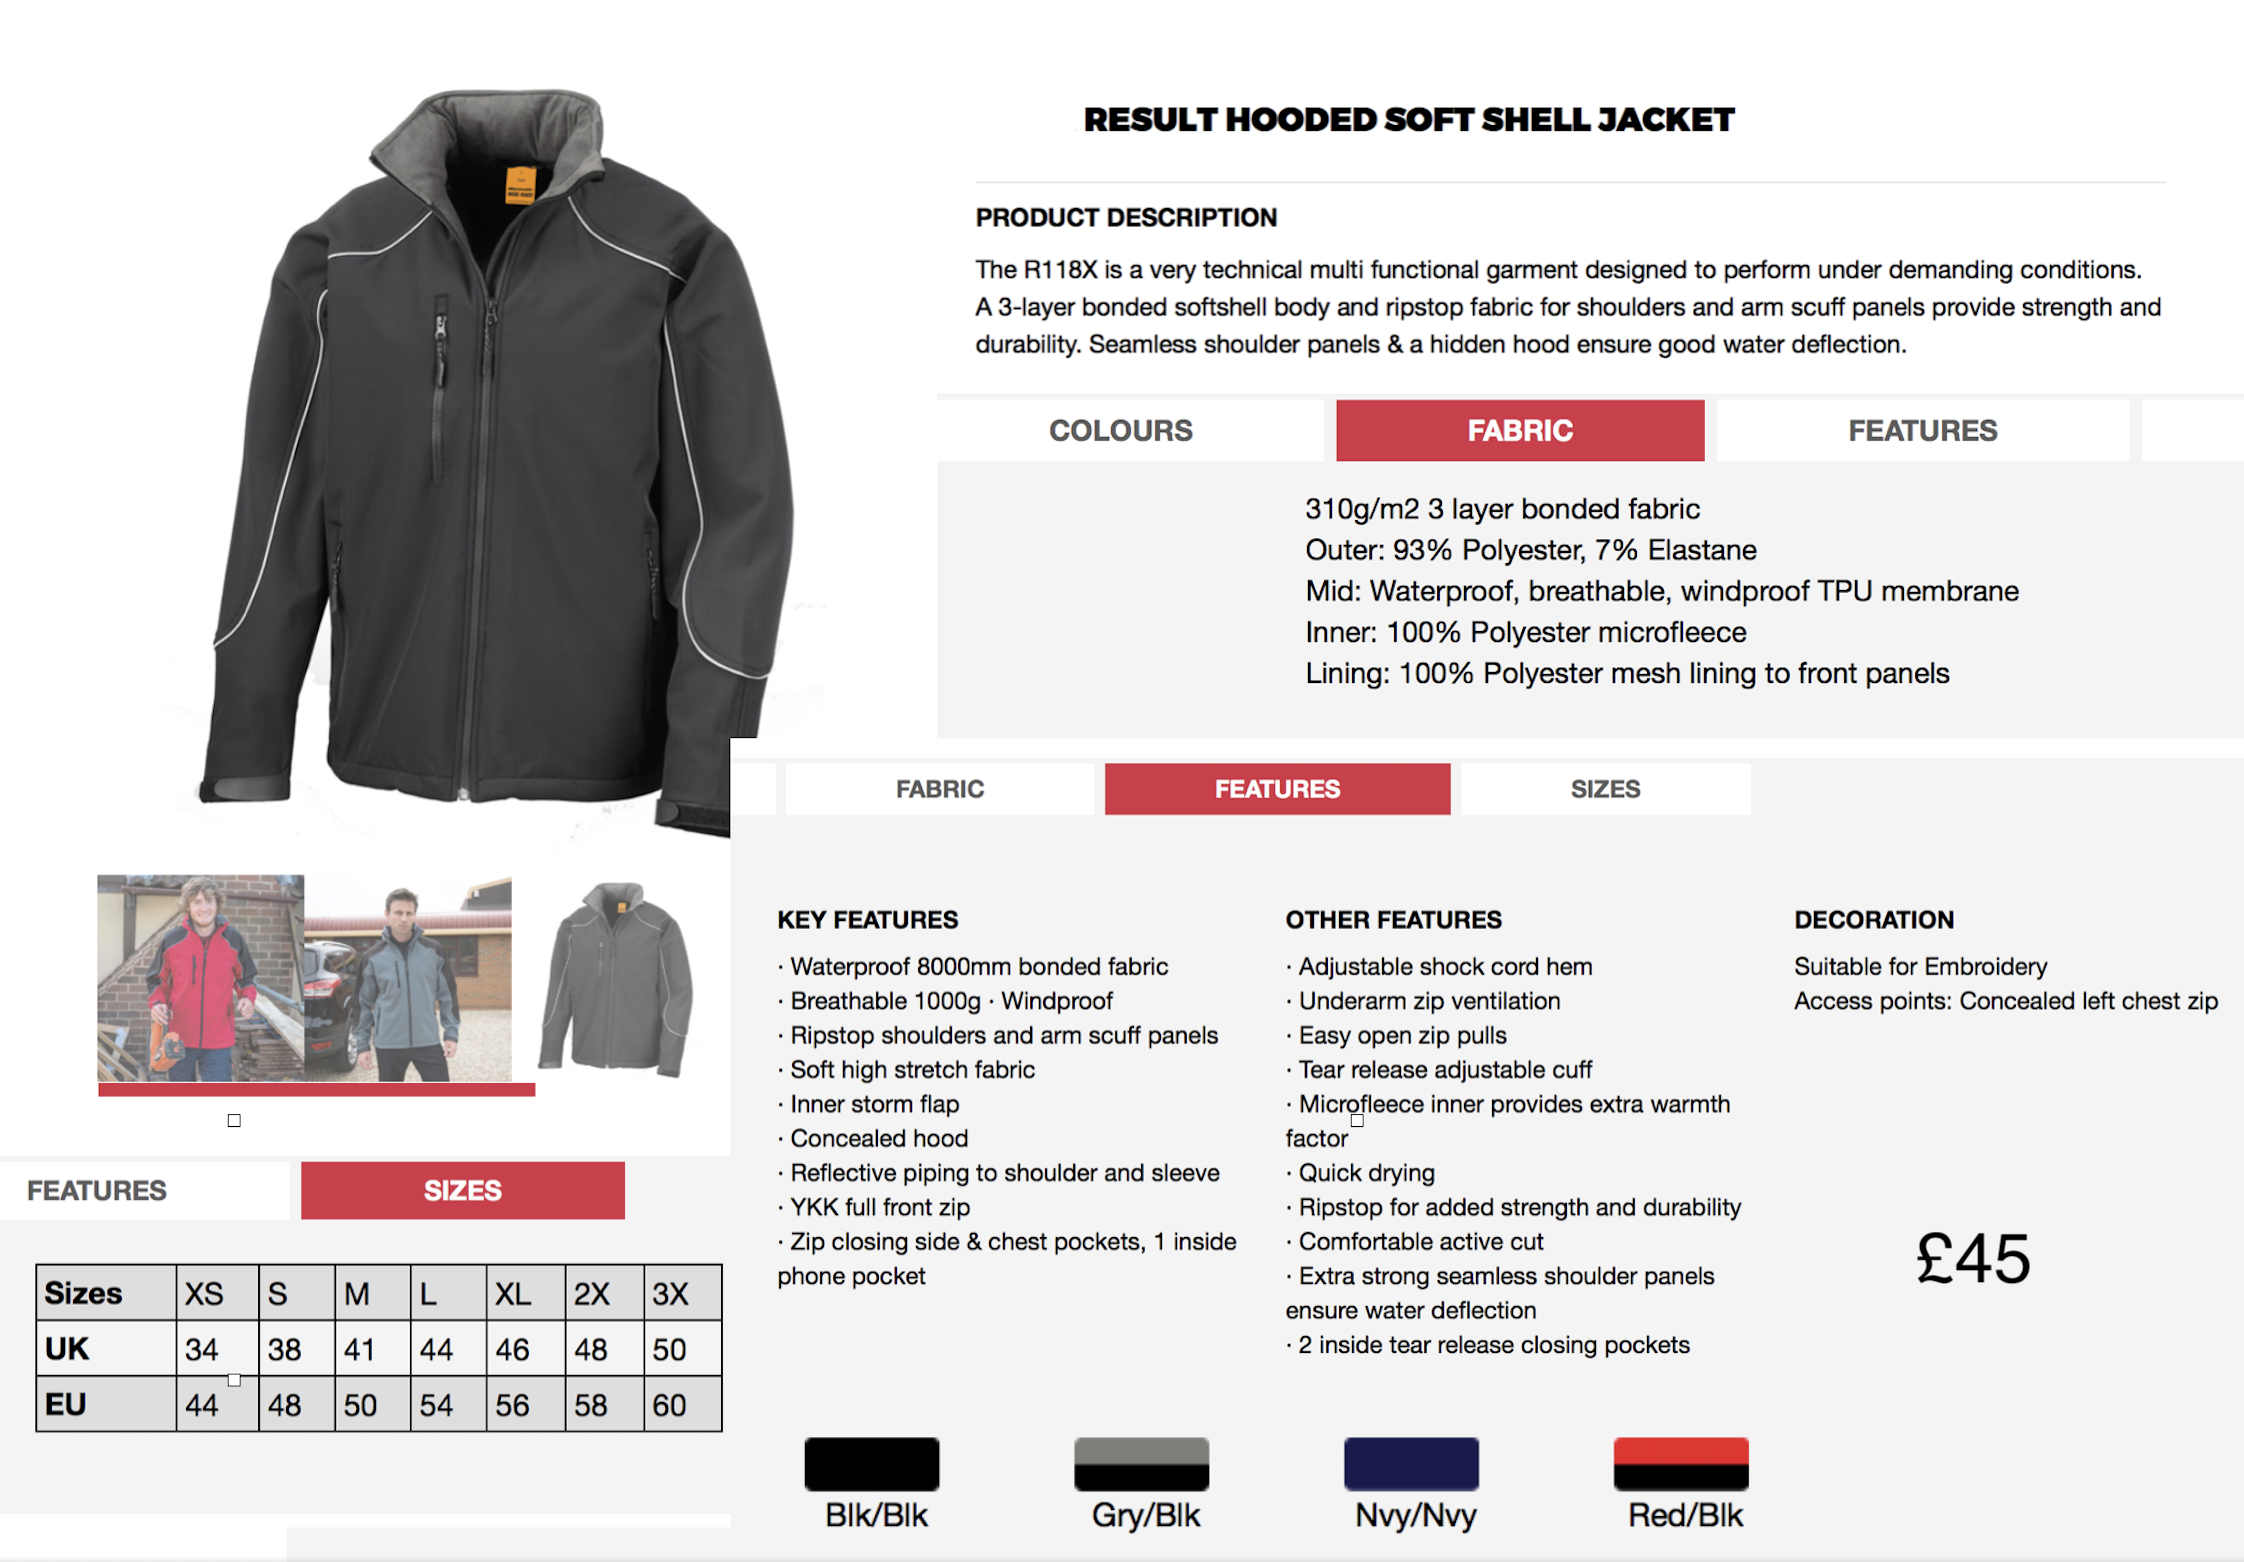 softshell jacket embroidery custom logo embroidered clothing uniform & workwear Pic2Stitch custom embroidery service